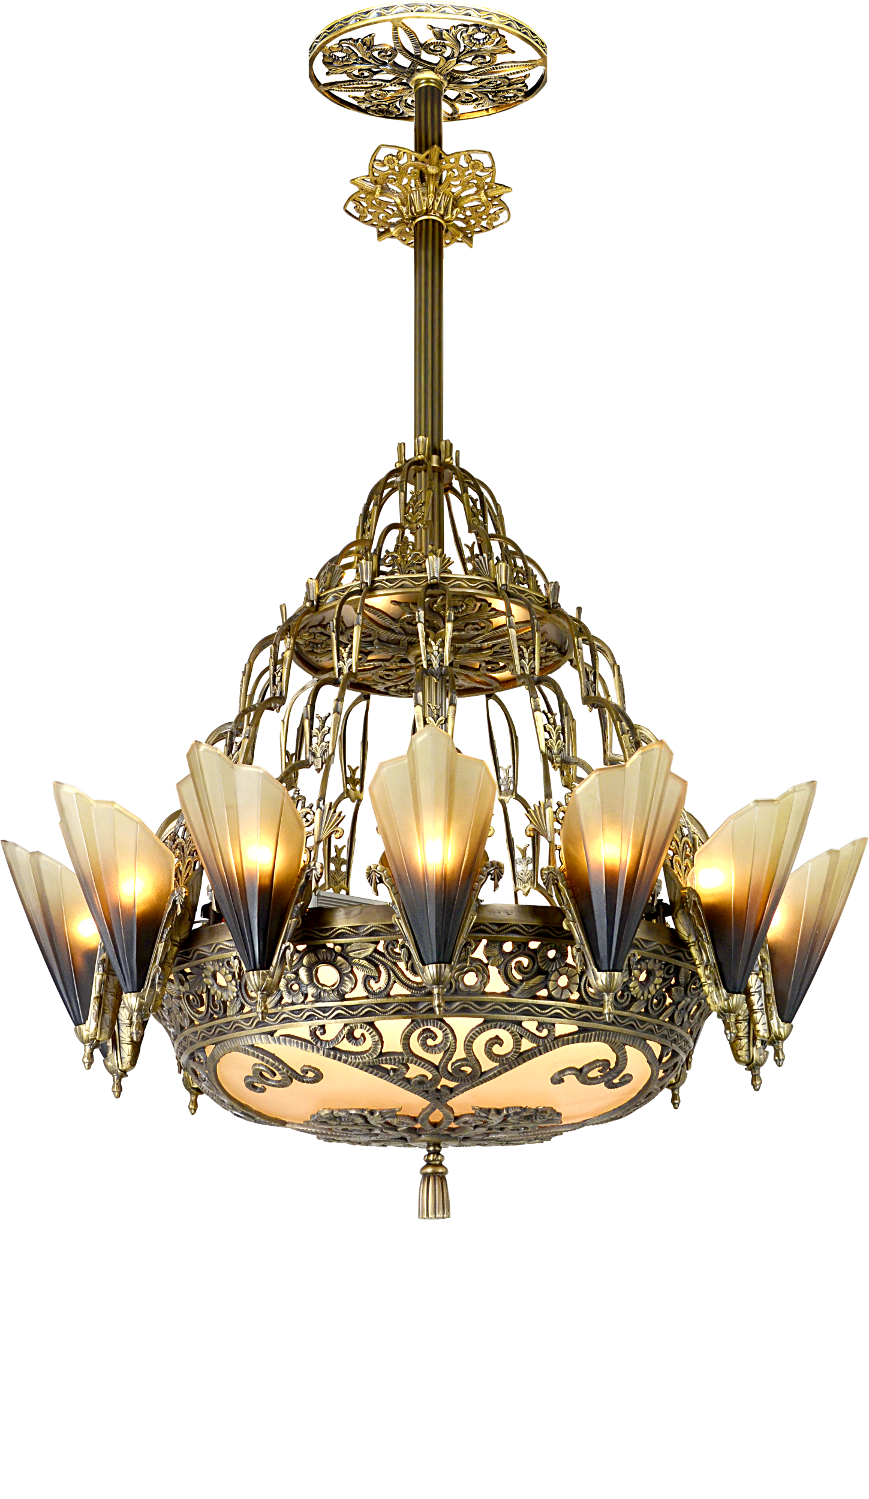 Vintage Hardware & Lighting - Our Newest Antique Lighting Reproductions